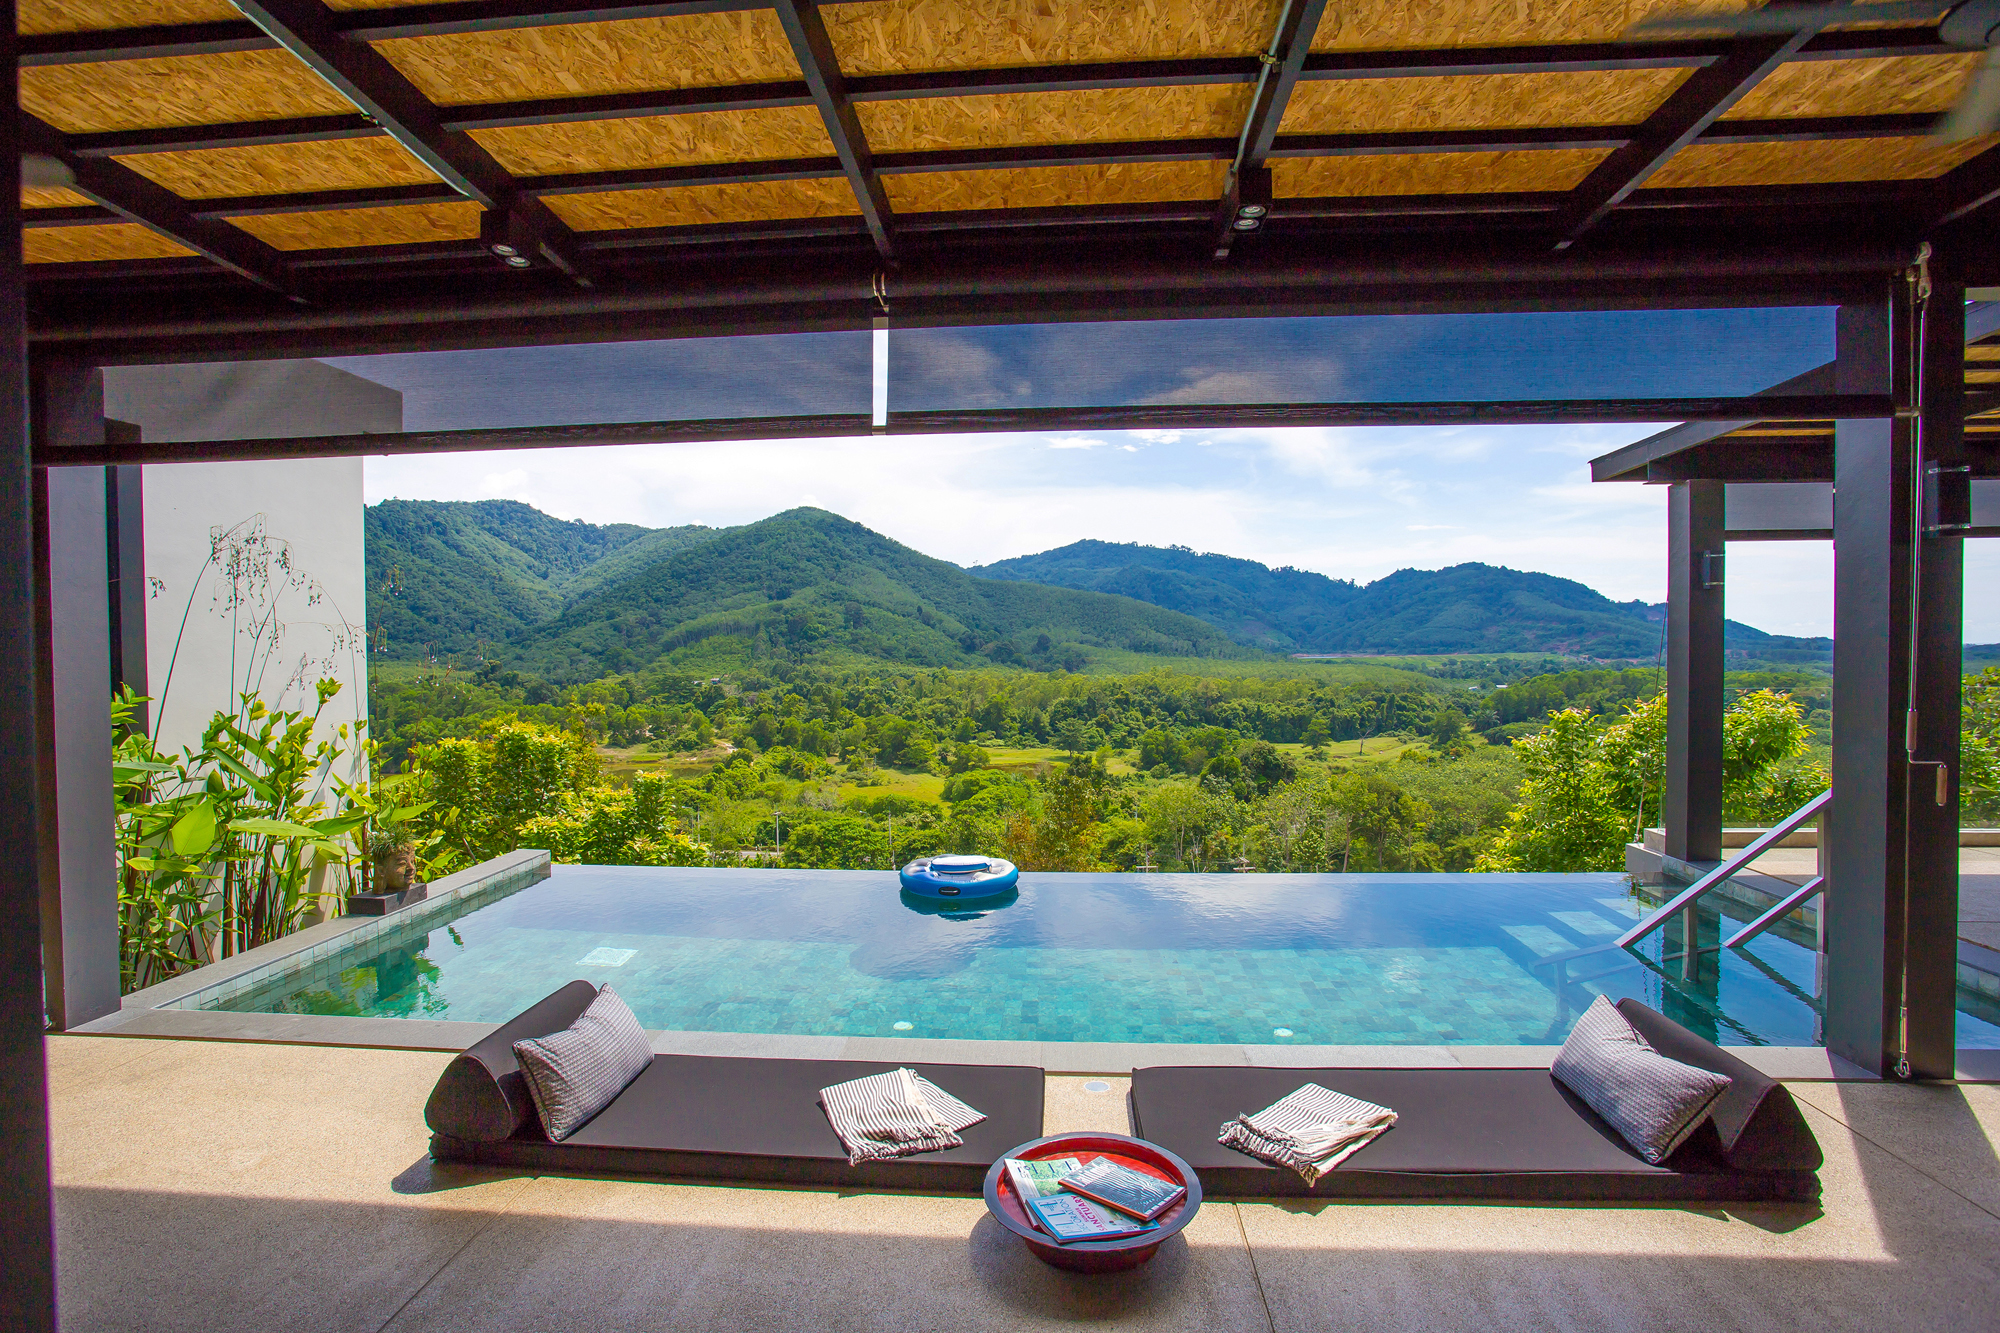 4-Bedroom pool villa with mountain view